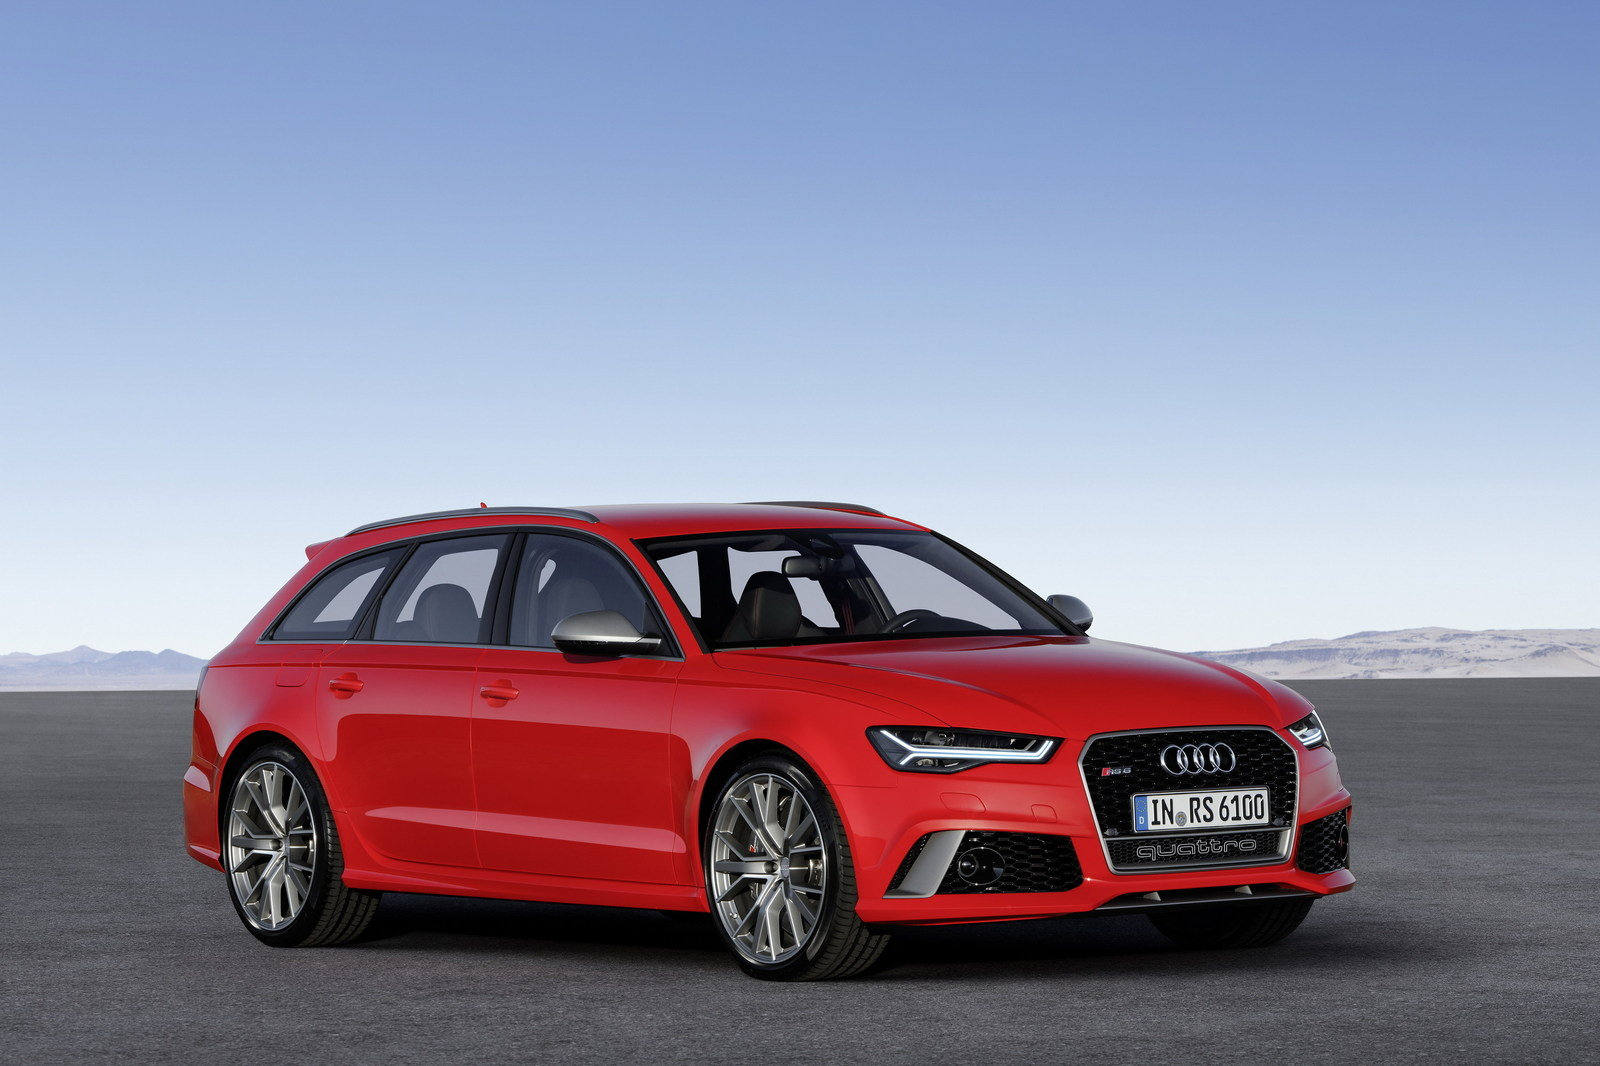 2016 audi rs6 avant performance picture 652320 car review top speed. Black Bedroom Furniture Sets. Home Design Ideas